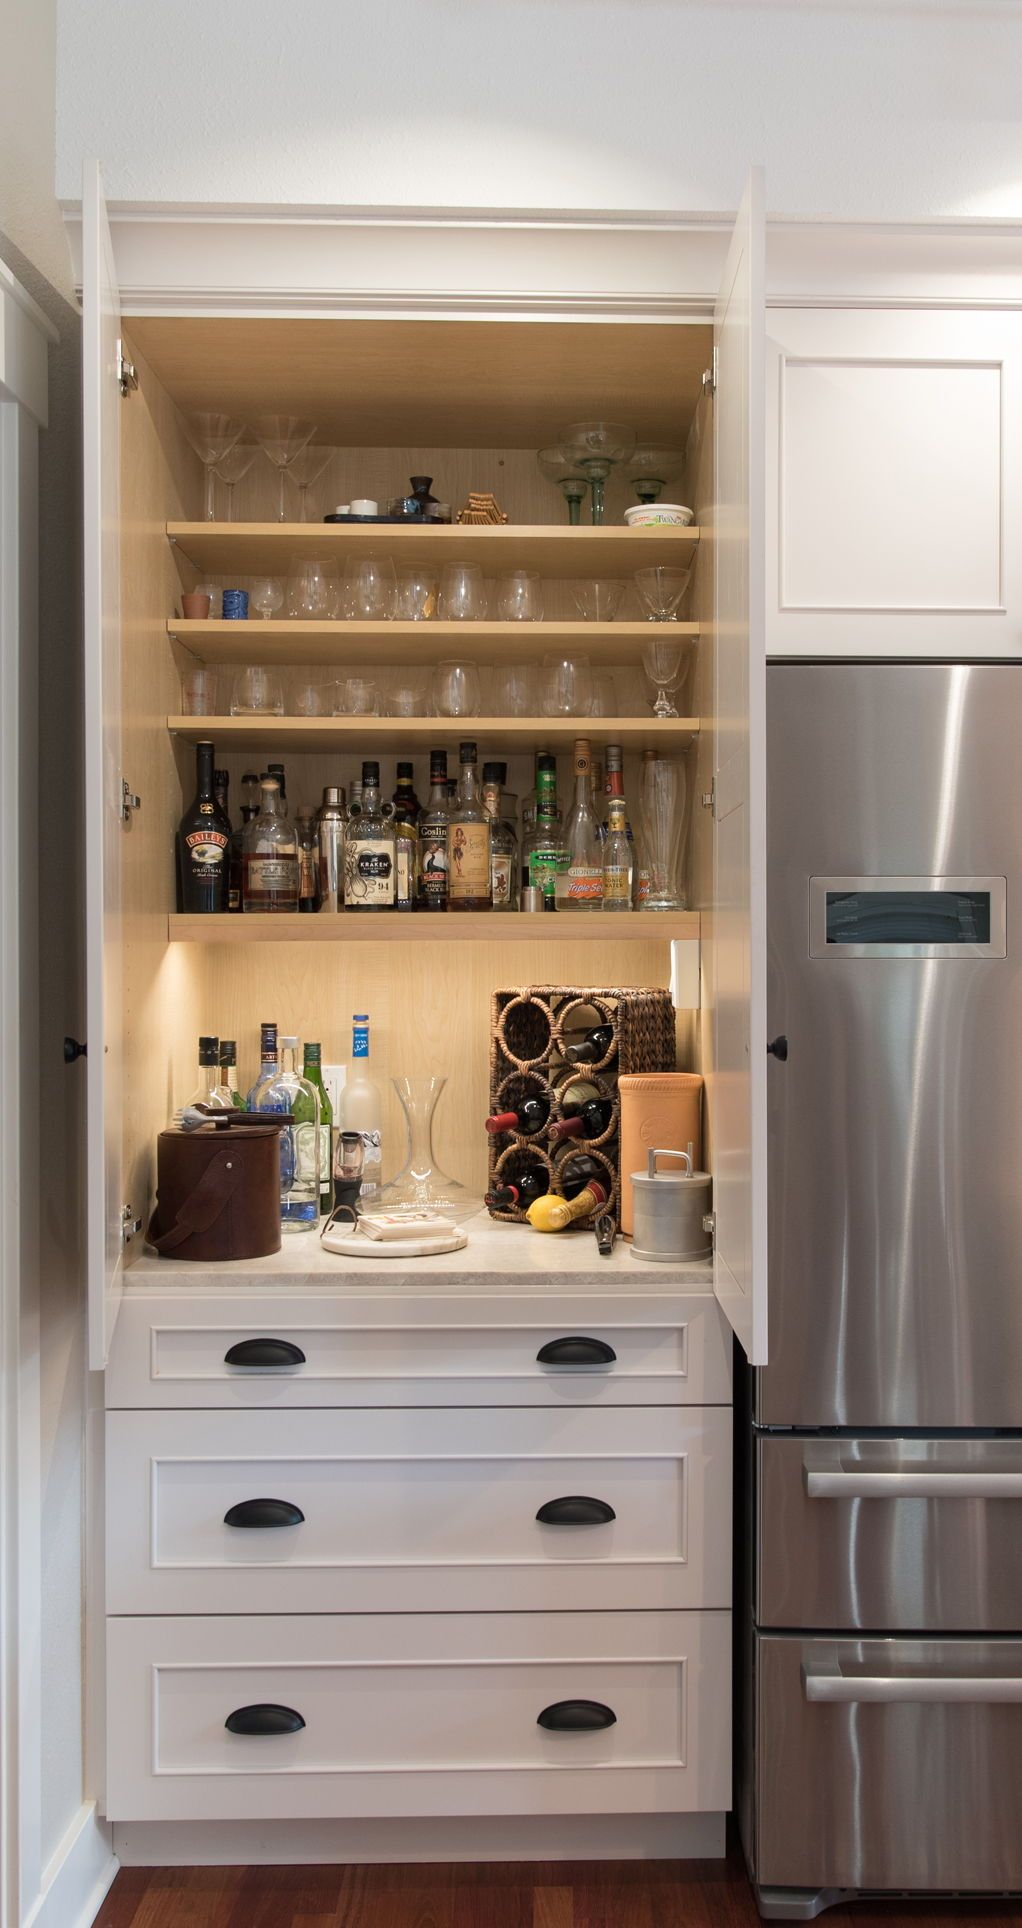 Pin by Rhonda Holt on Ideas for the House Hidden kitchen